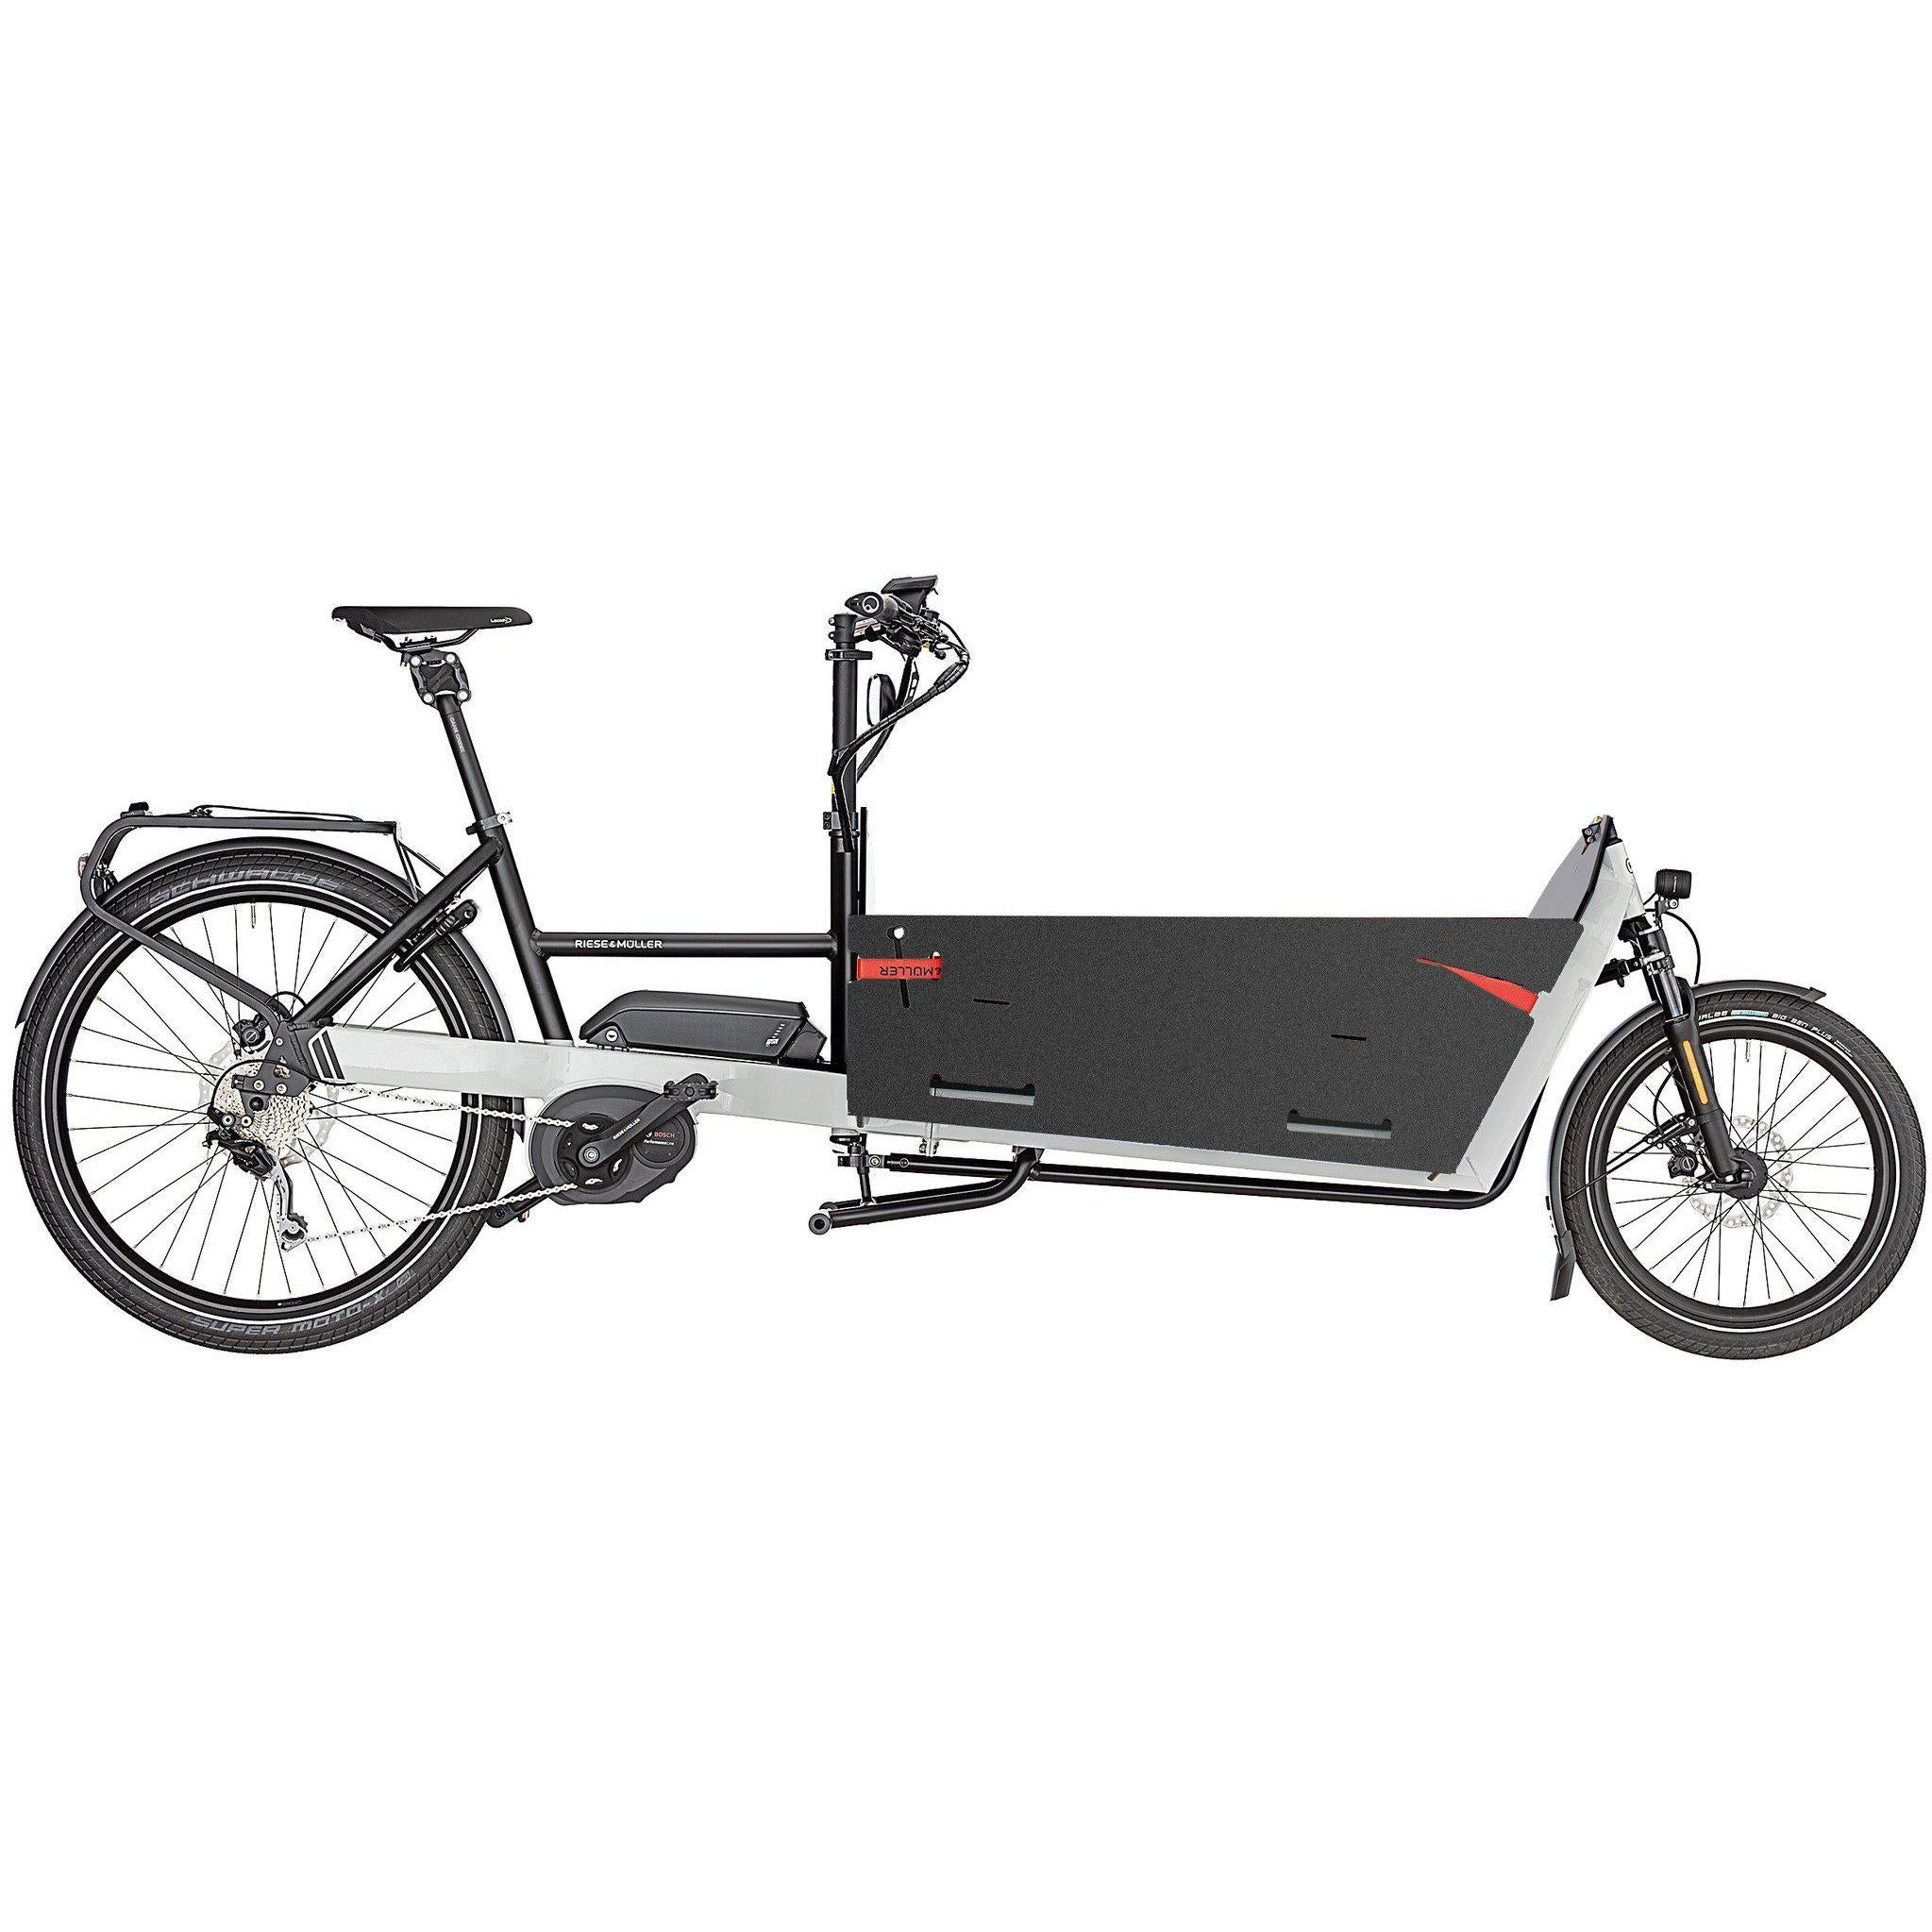 Riese & Müller Electric Bikes Packster 80 Touring HS-Oregon EBikes